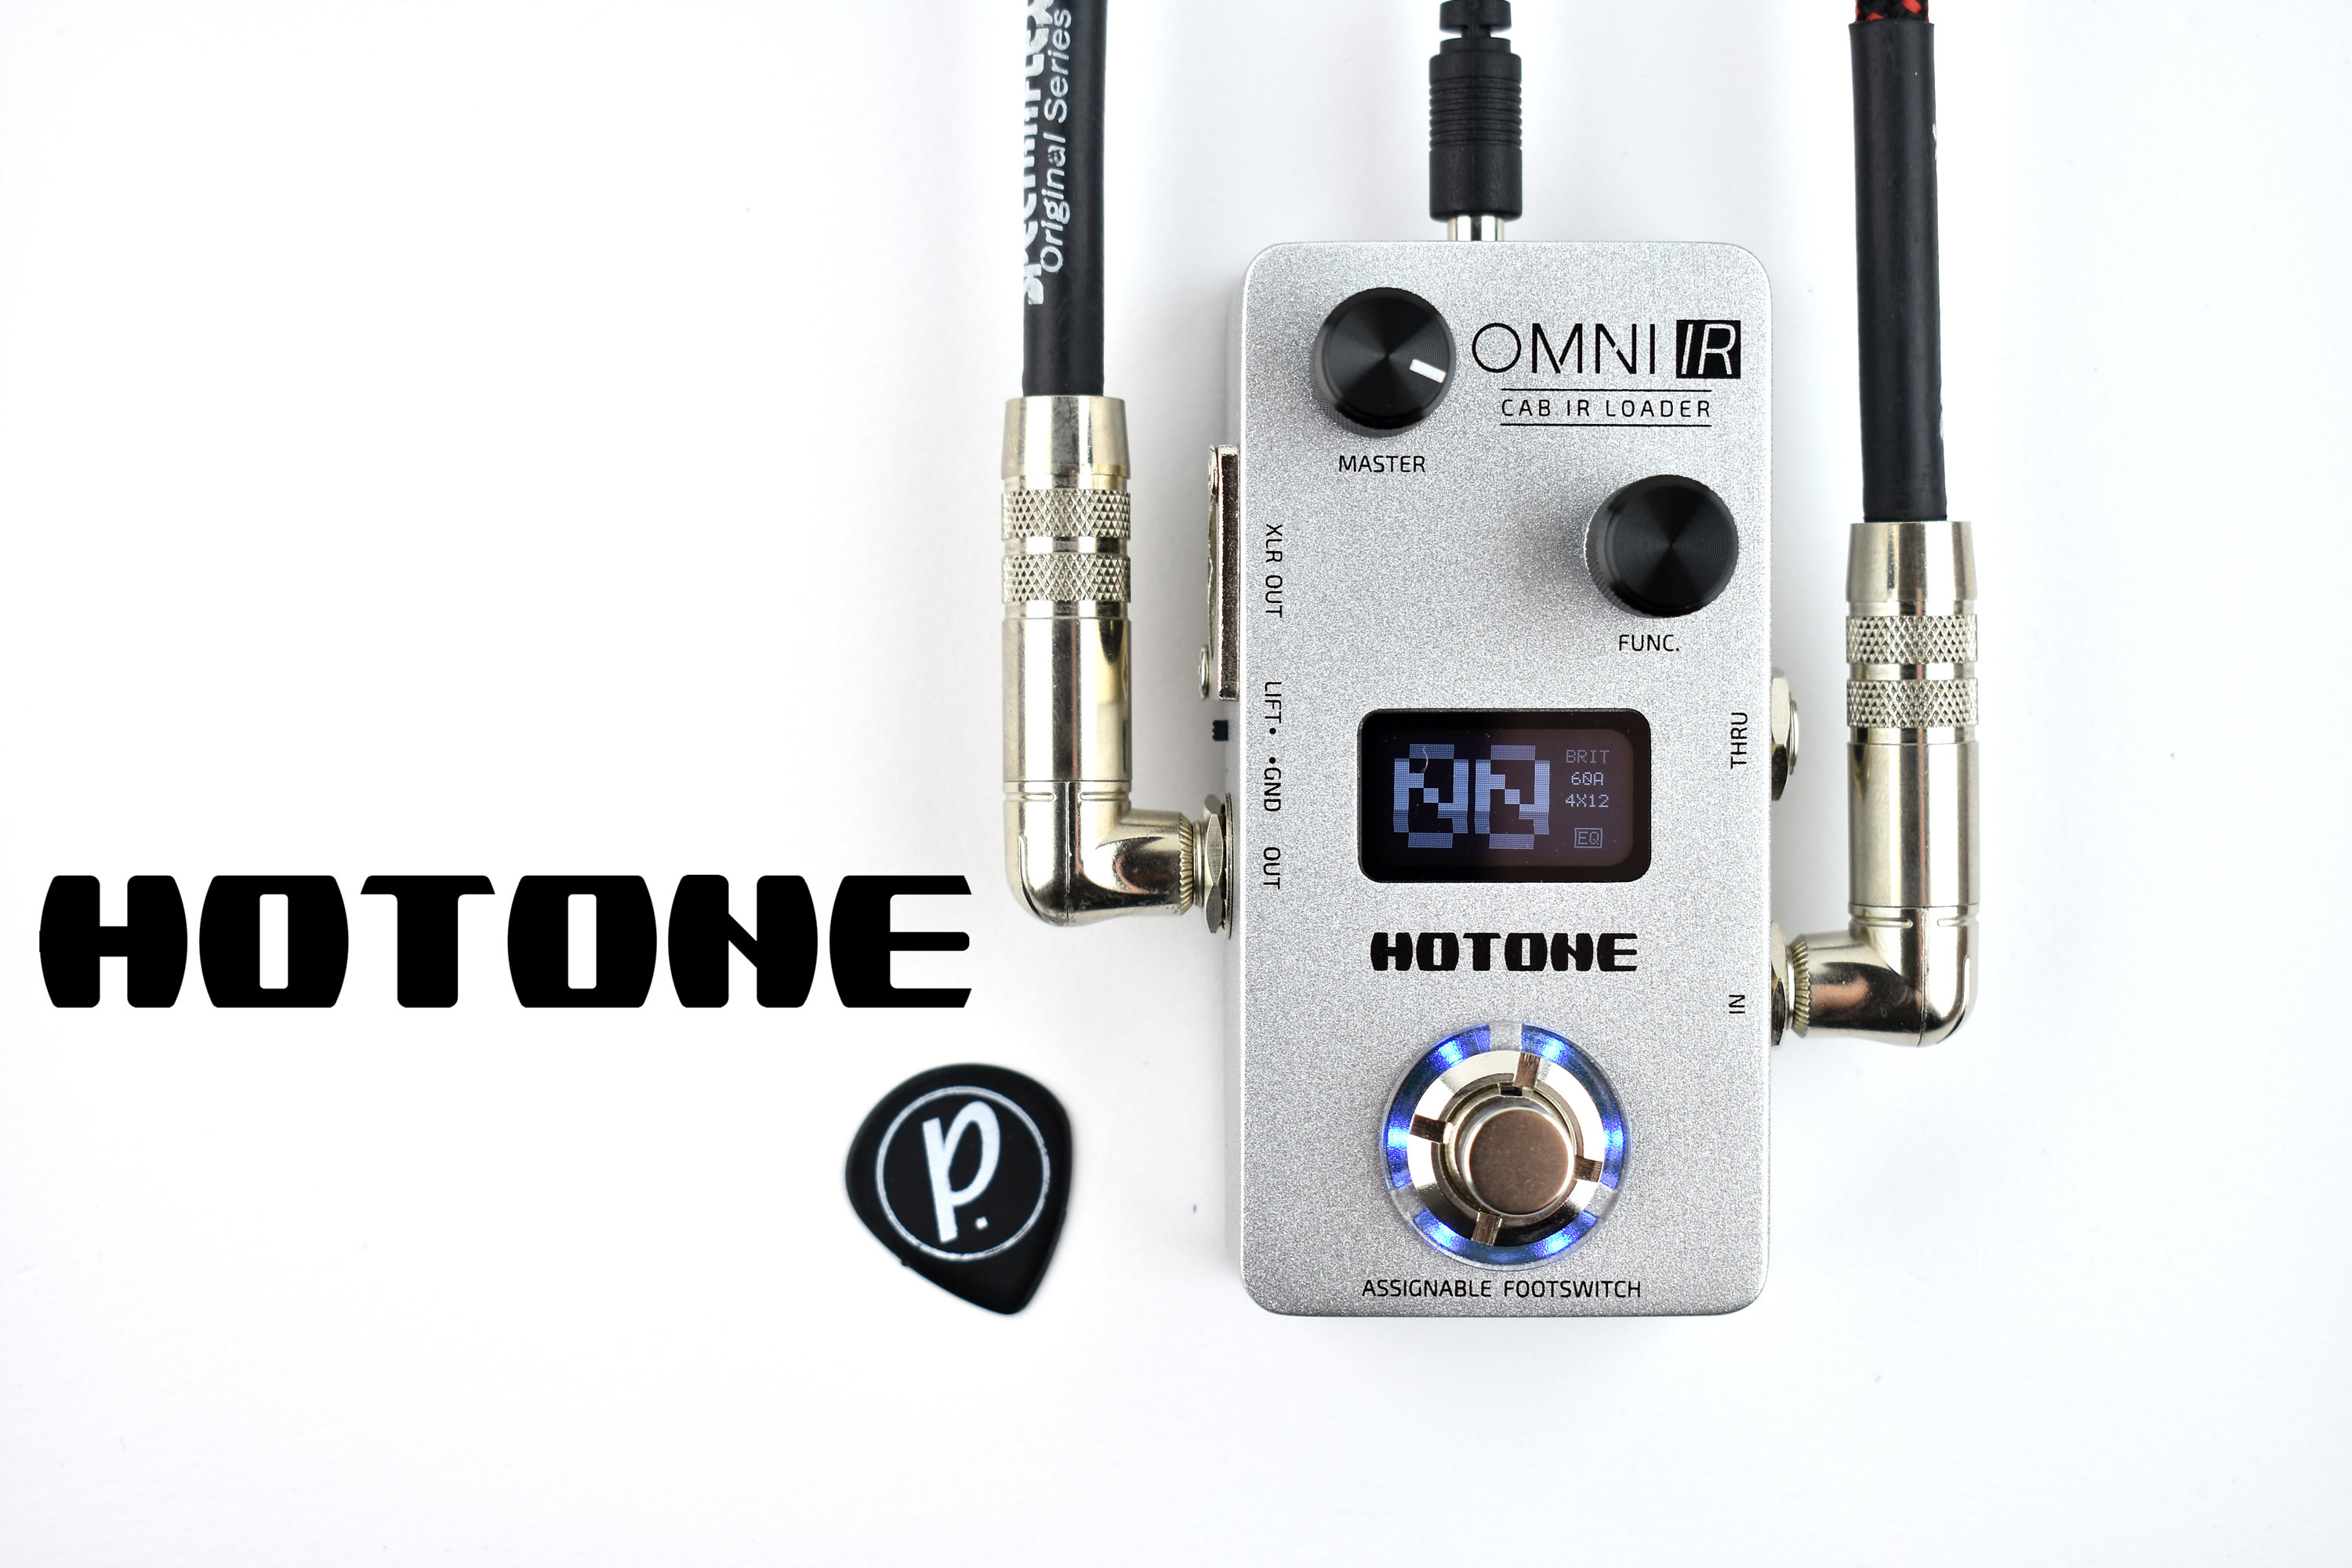 hotone audio omni ir impulse response cabinet simulator pedal of the day. Black Bedroom Furniture Sets. Home Design Ideas